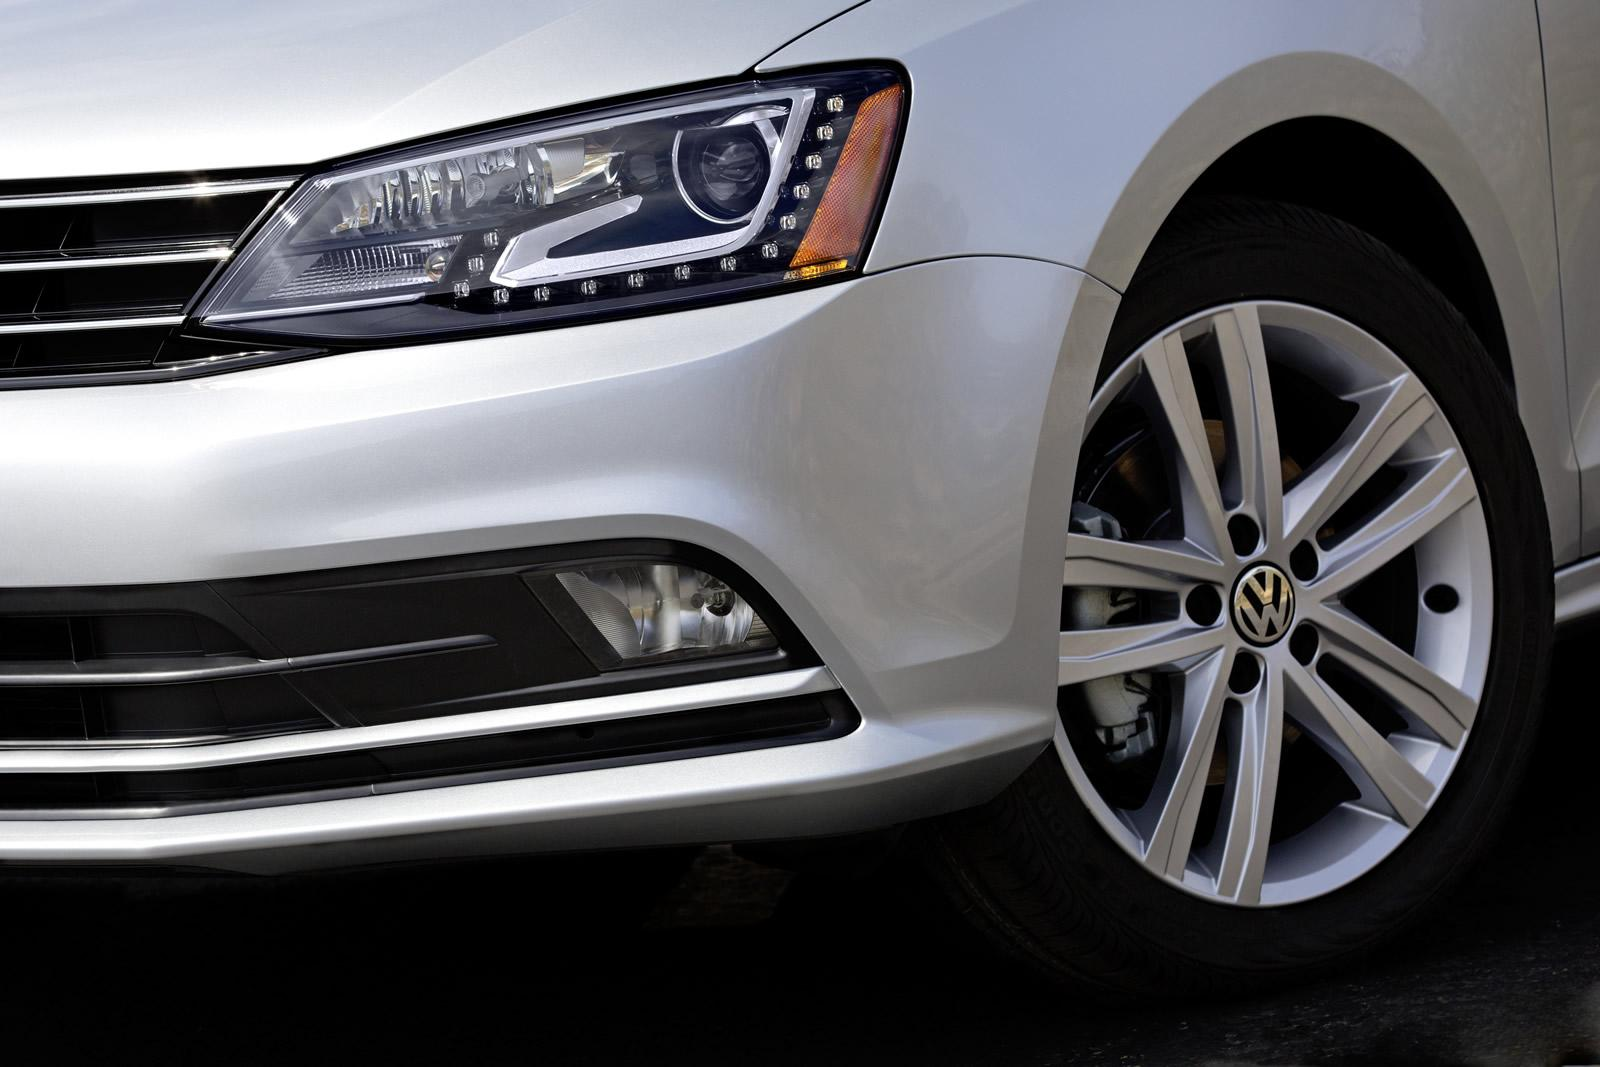 r wheels fits rims image is loading silver jetta hre form concave golf liquid flow volkswagen itm white